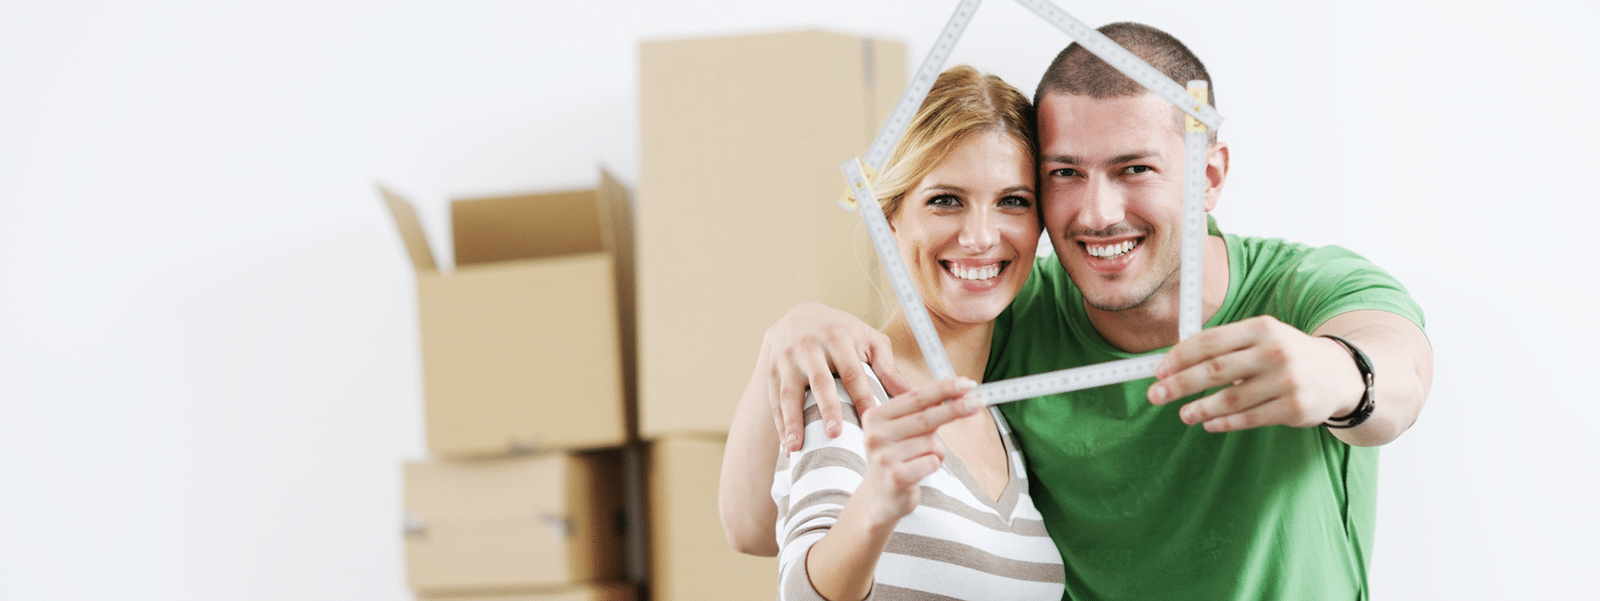 happy couple holding rulers in the shape of house in front of moving boxes